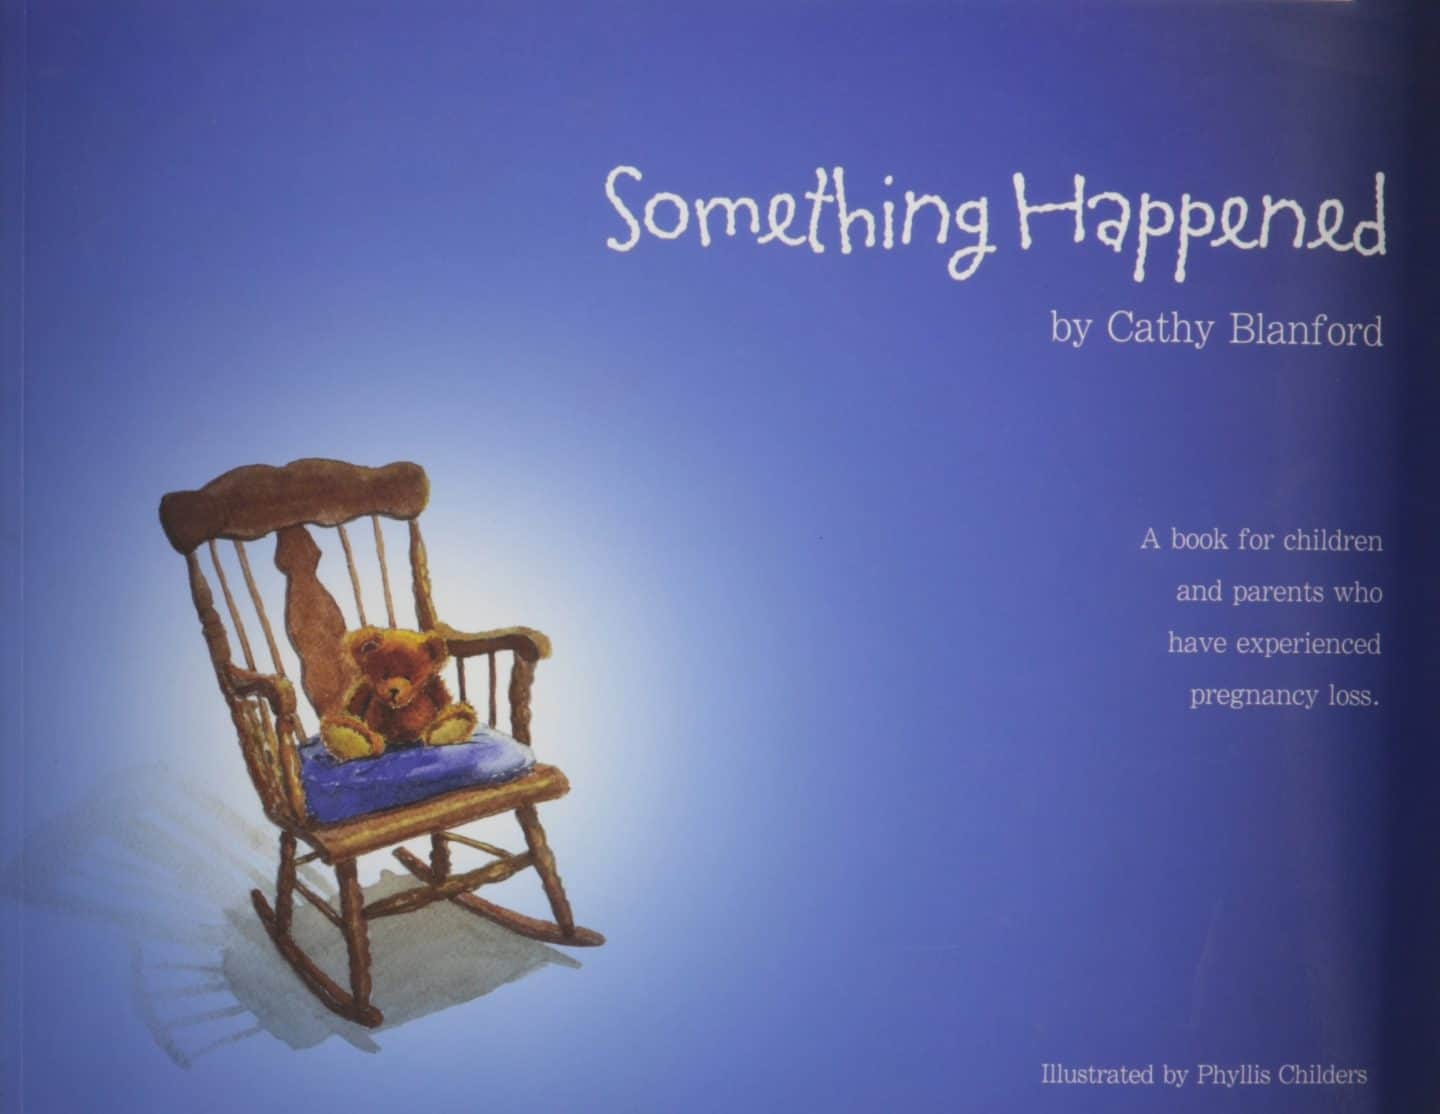 children's book on baby loss